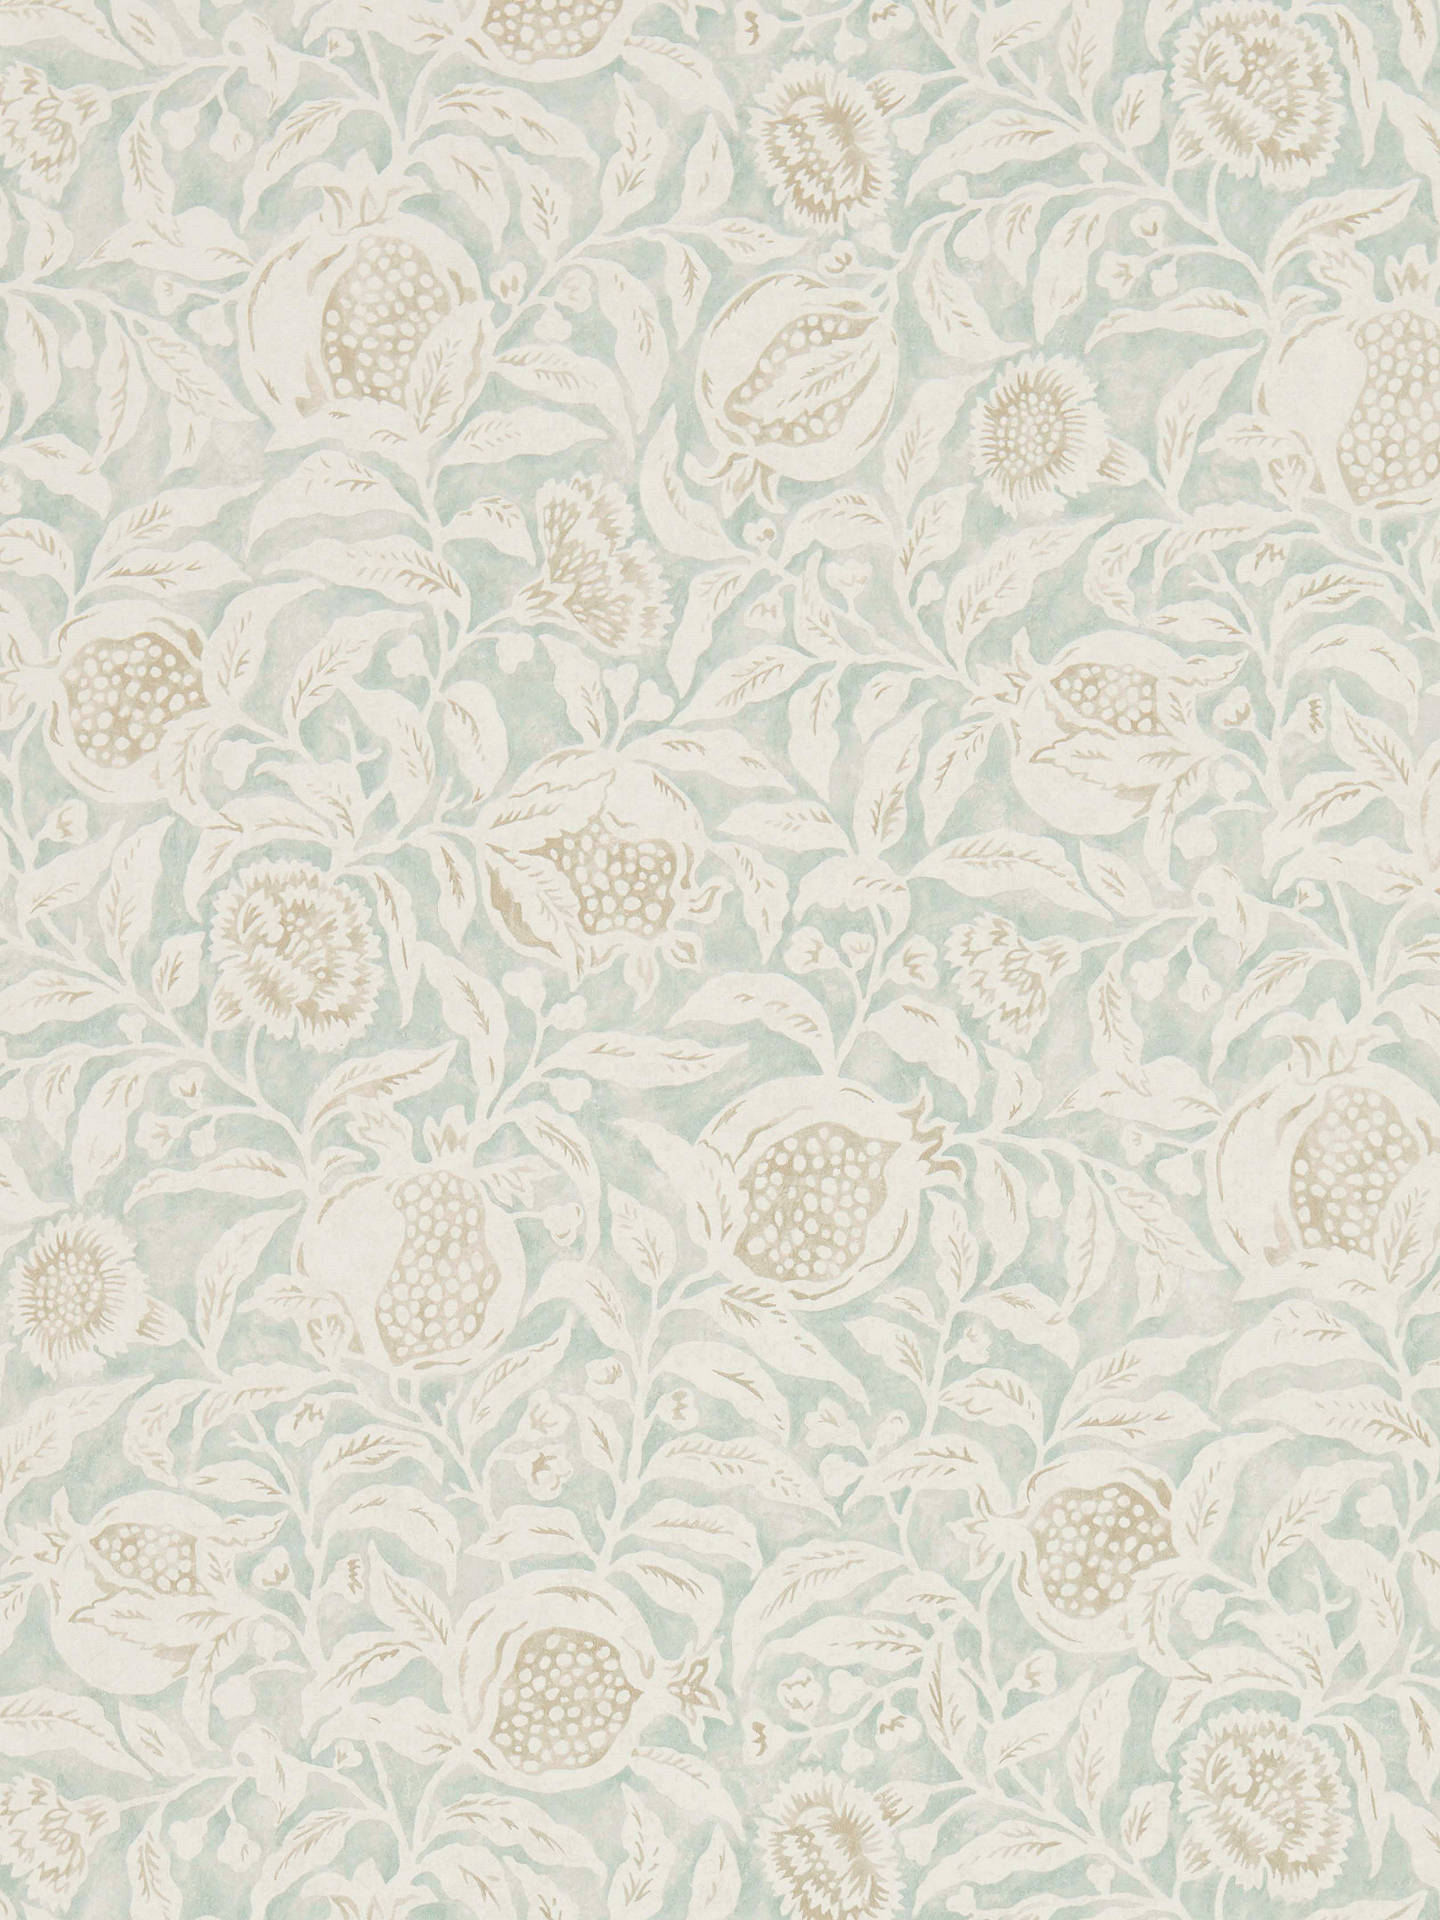 Buy Sanderson Annandale Wallpaper DDAM216393 Online at johnlewis.com